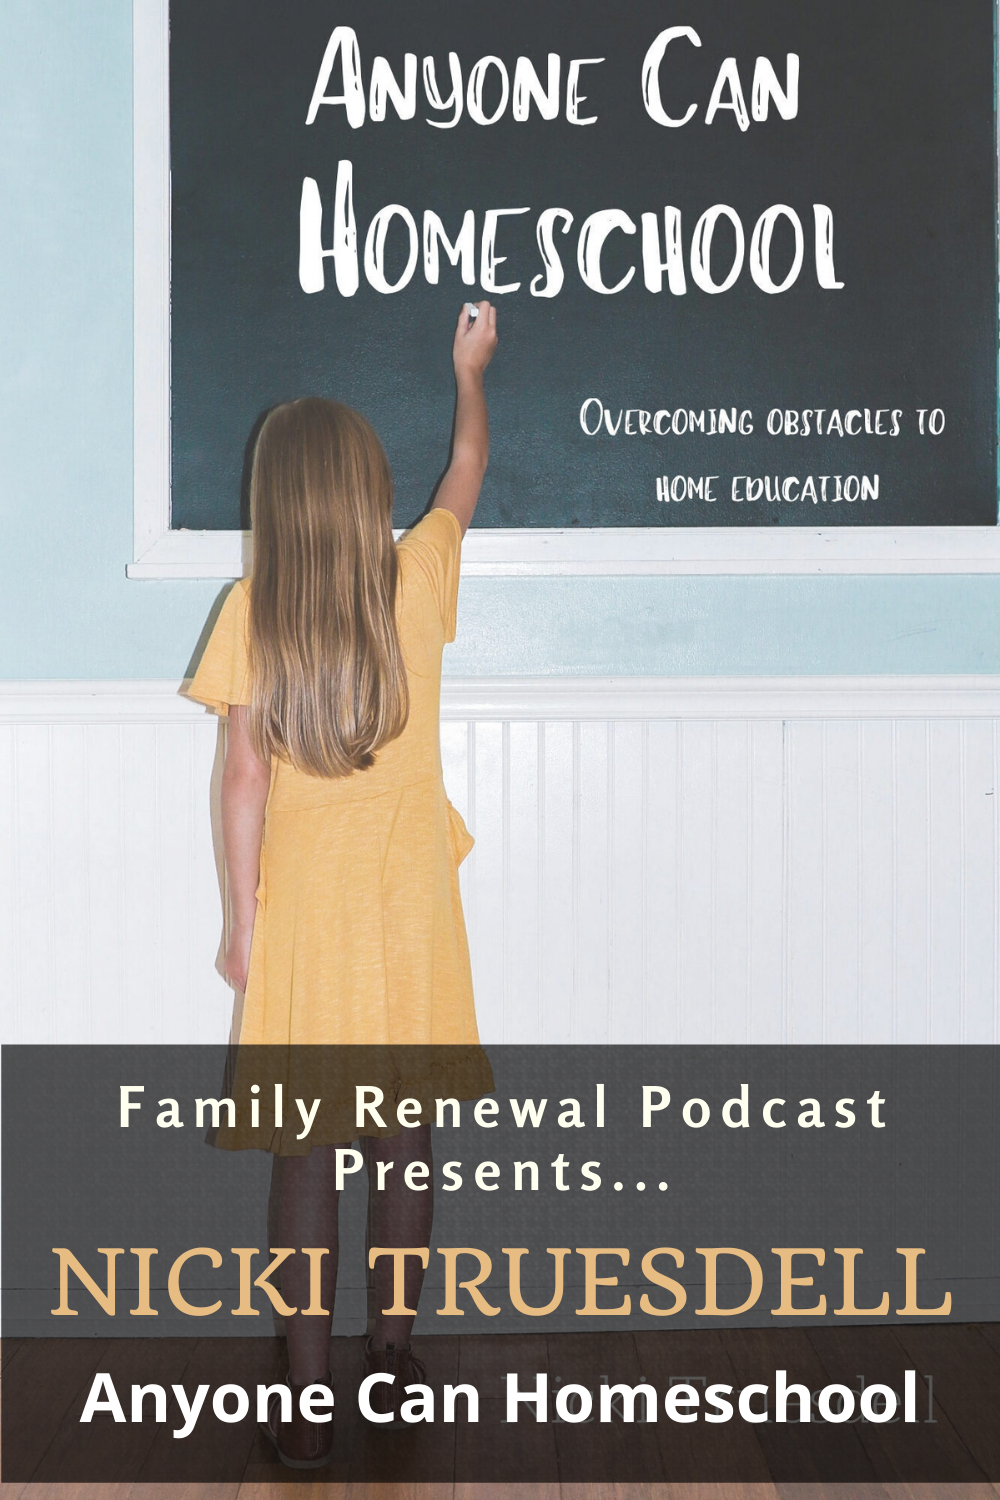 """Nicki Truesdell joins Israel Wayne to discuss the question, """"Can everyone homeschool?"""" What about single parents? What about special needs situations? What about the parent who doesn't feel qualified?"""